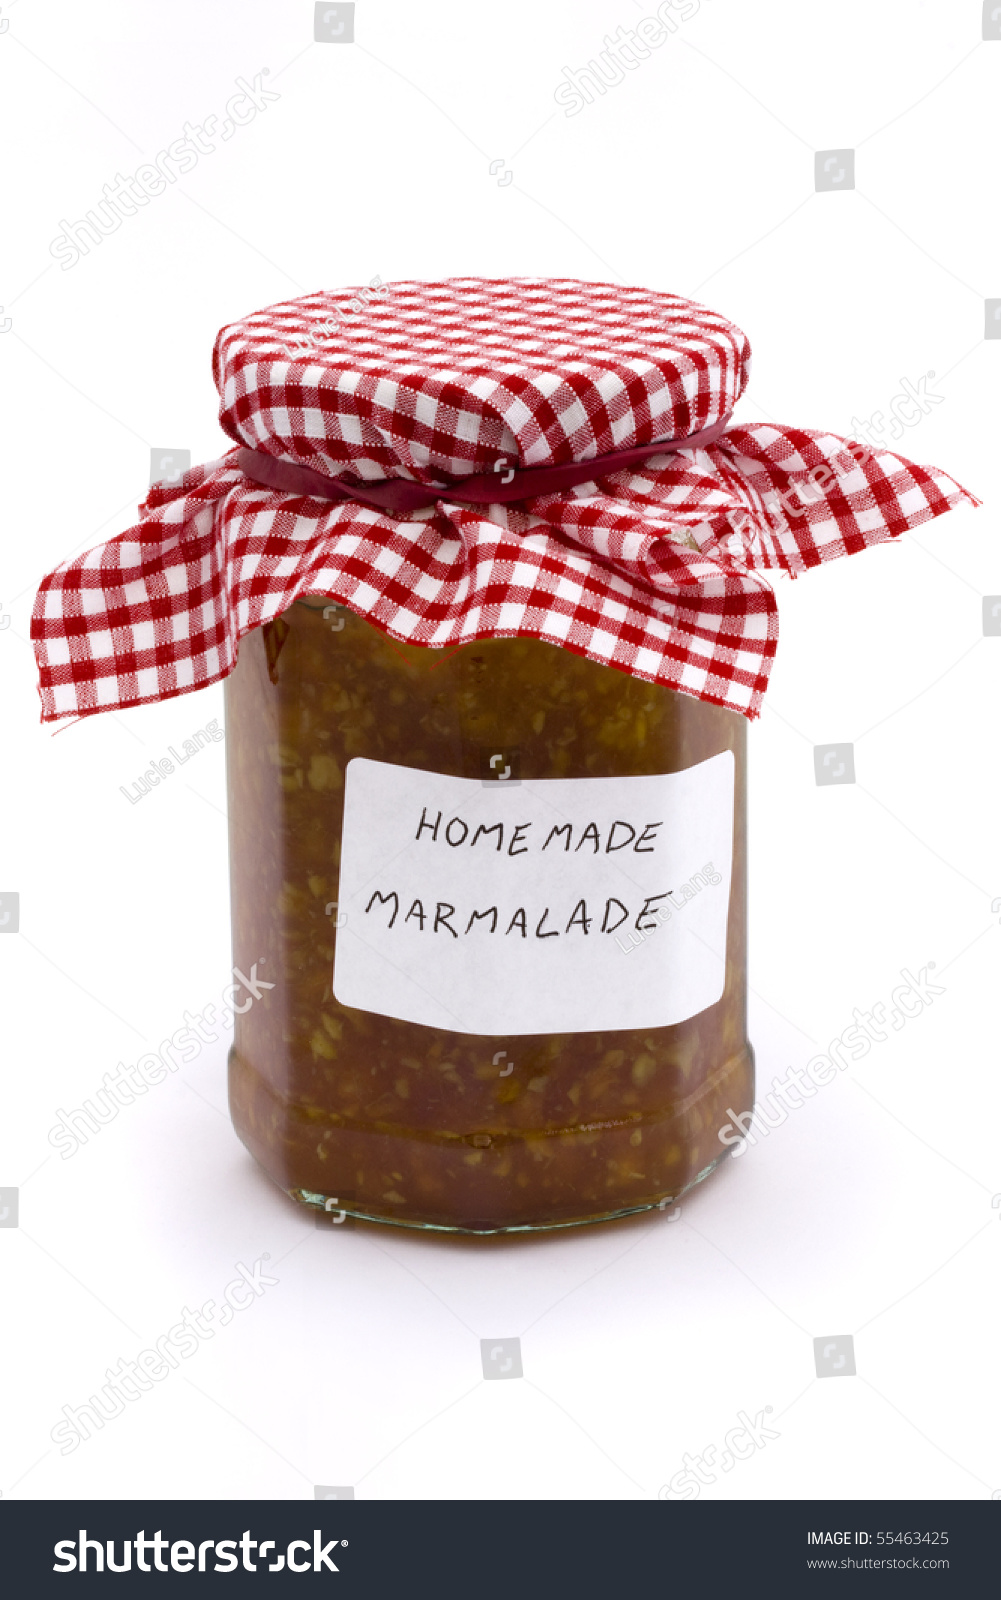 jar of homemade marmalade on a white background